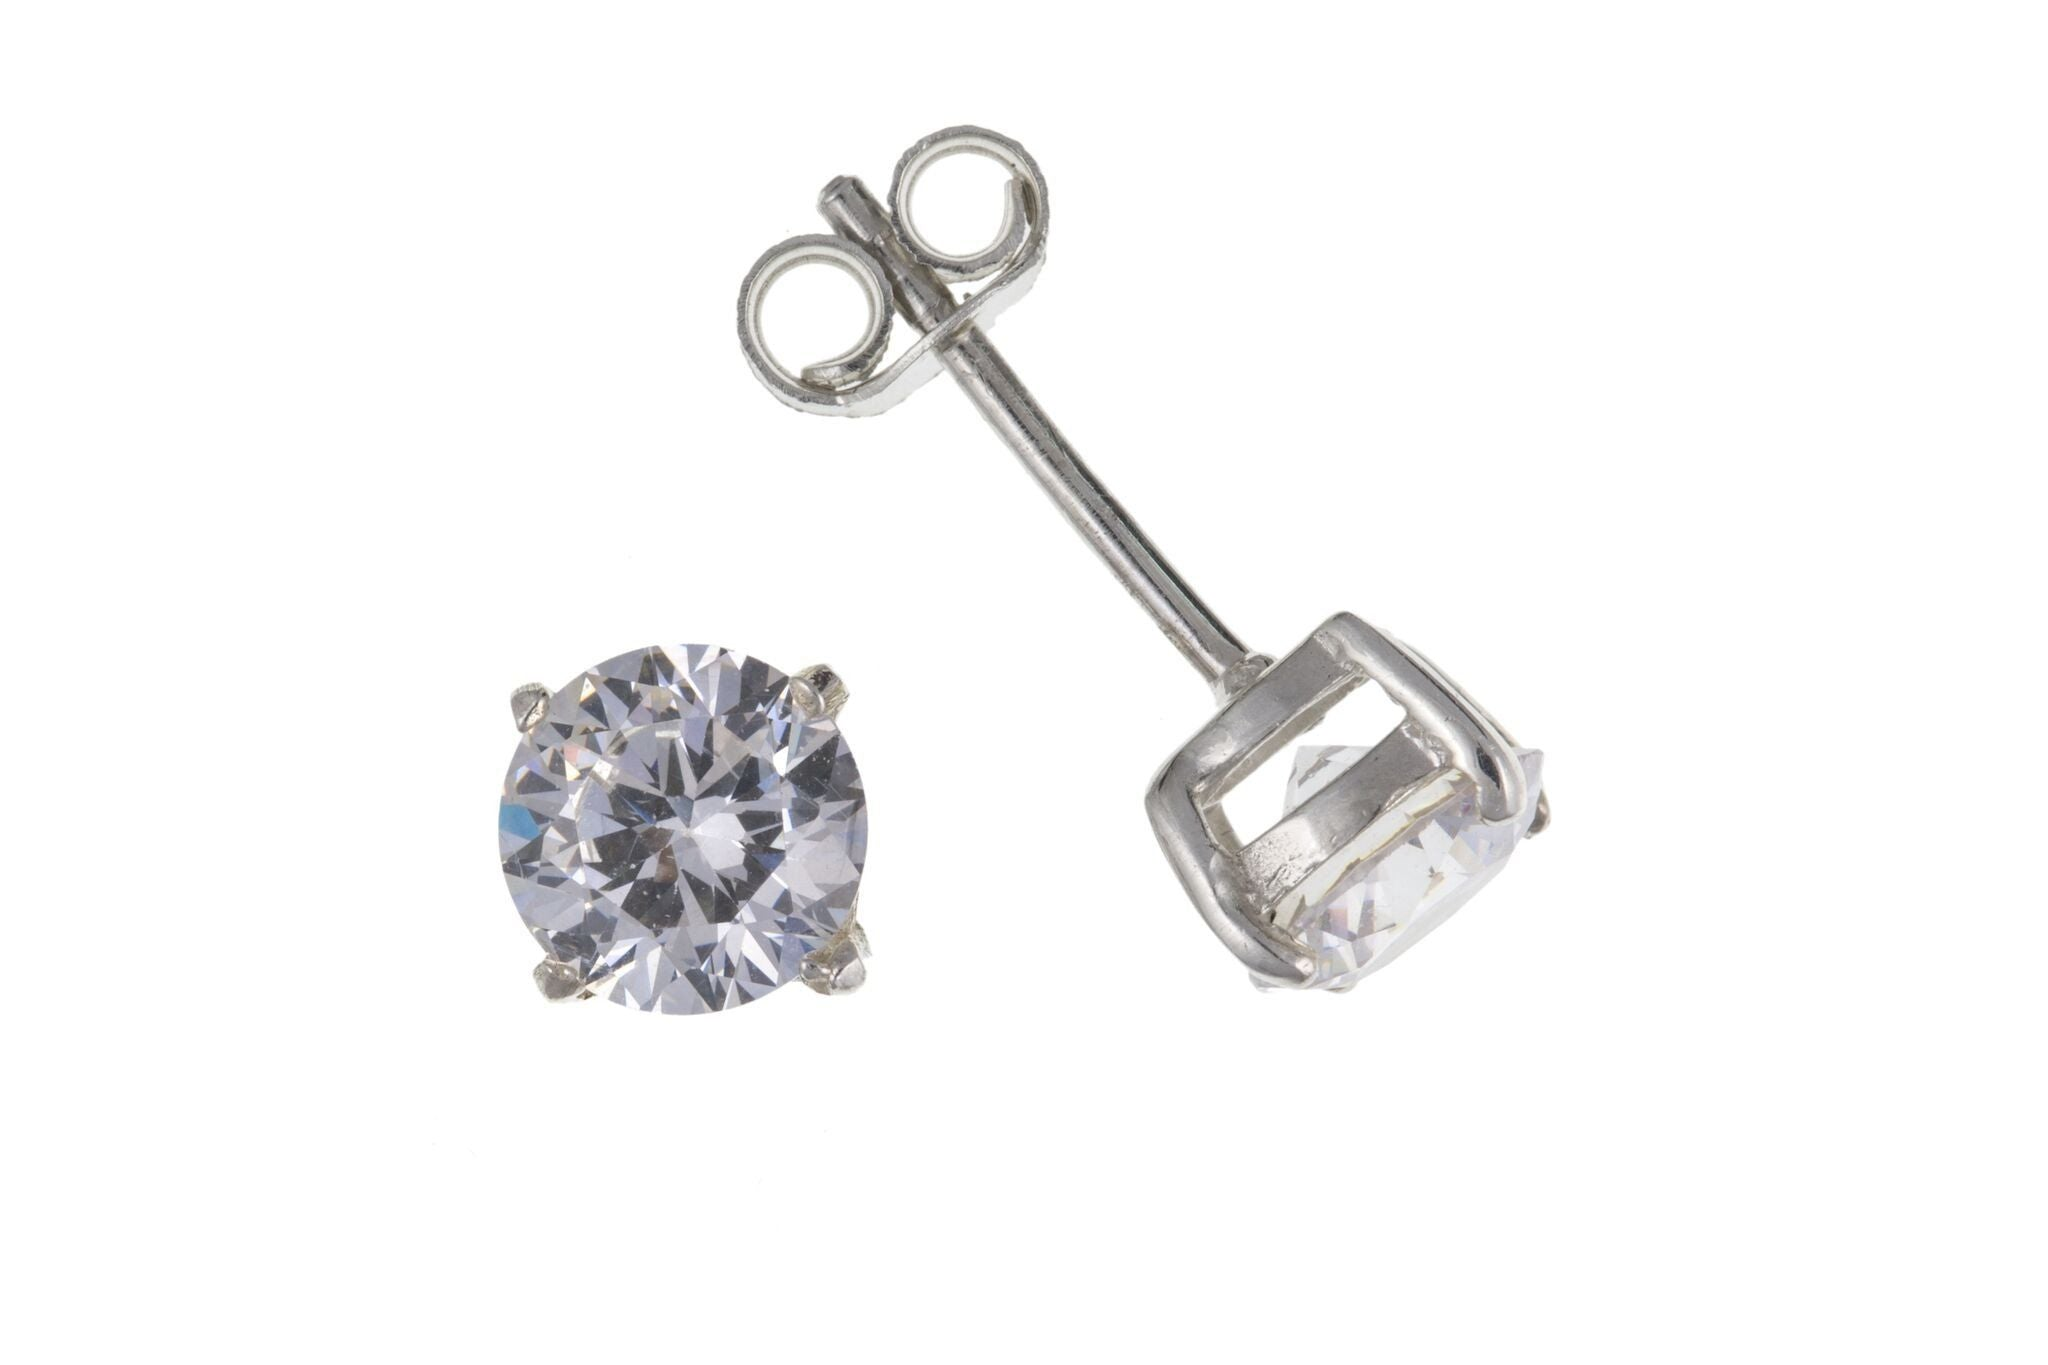 Silver CZ Stud Earrings (Heavyweight) SV6479BP - Jay's Jewellery